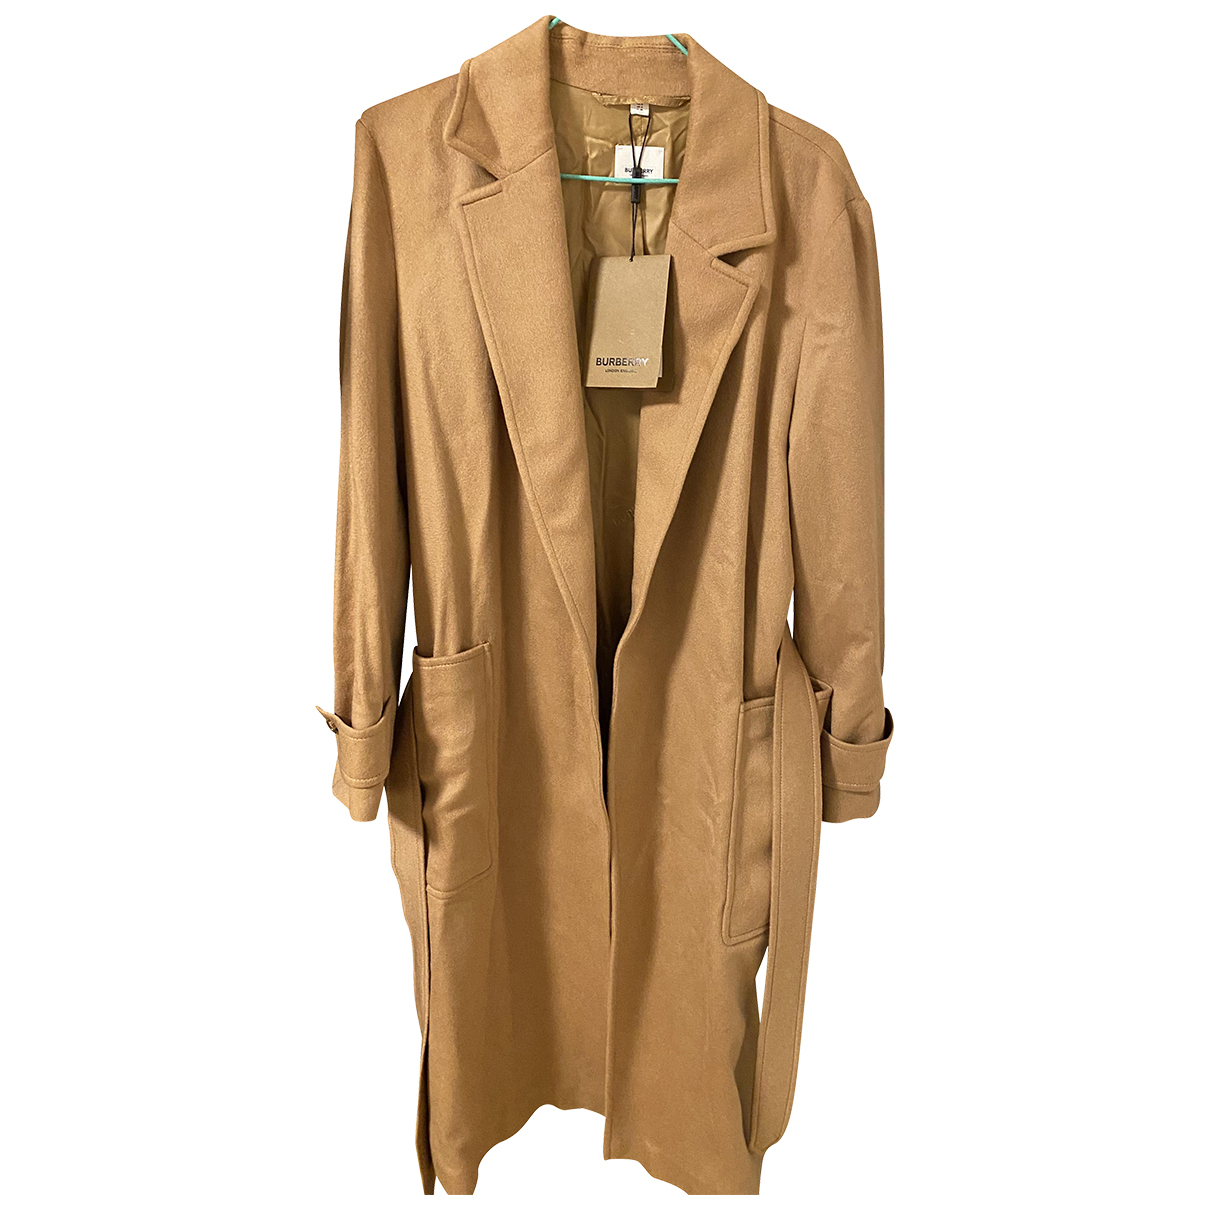 Burberry N Beige Cashmere Trench coat for Women 4 US